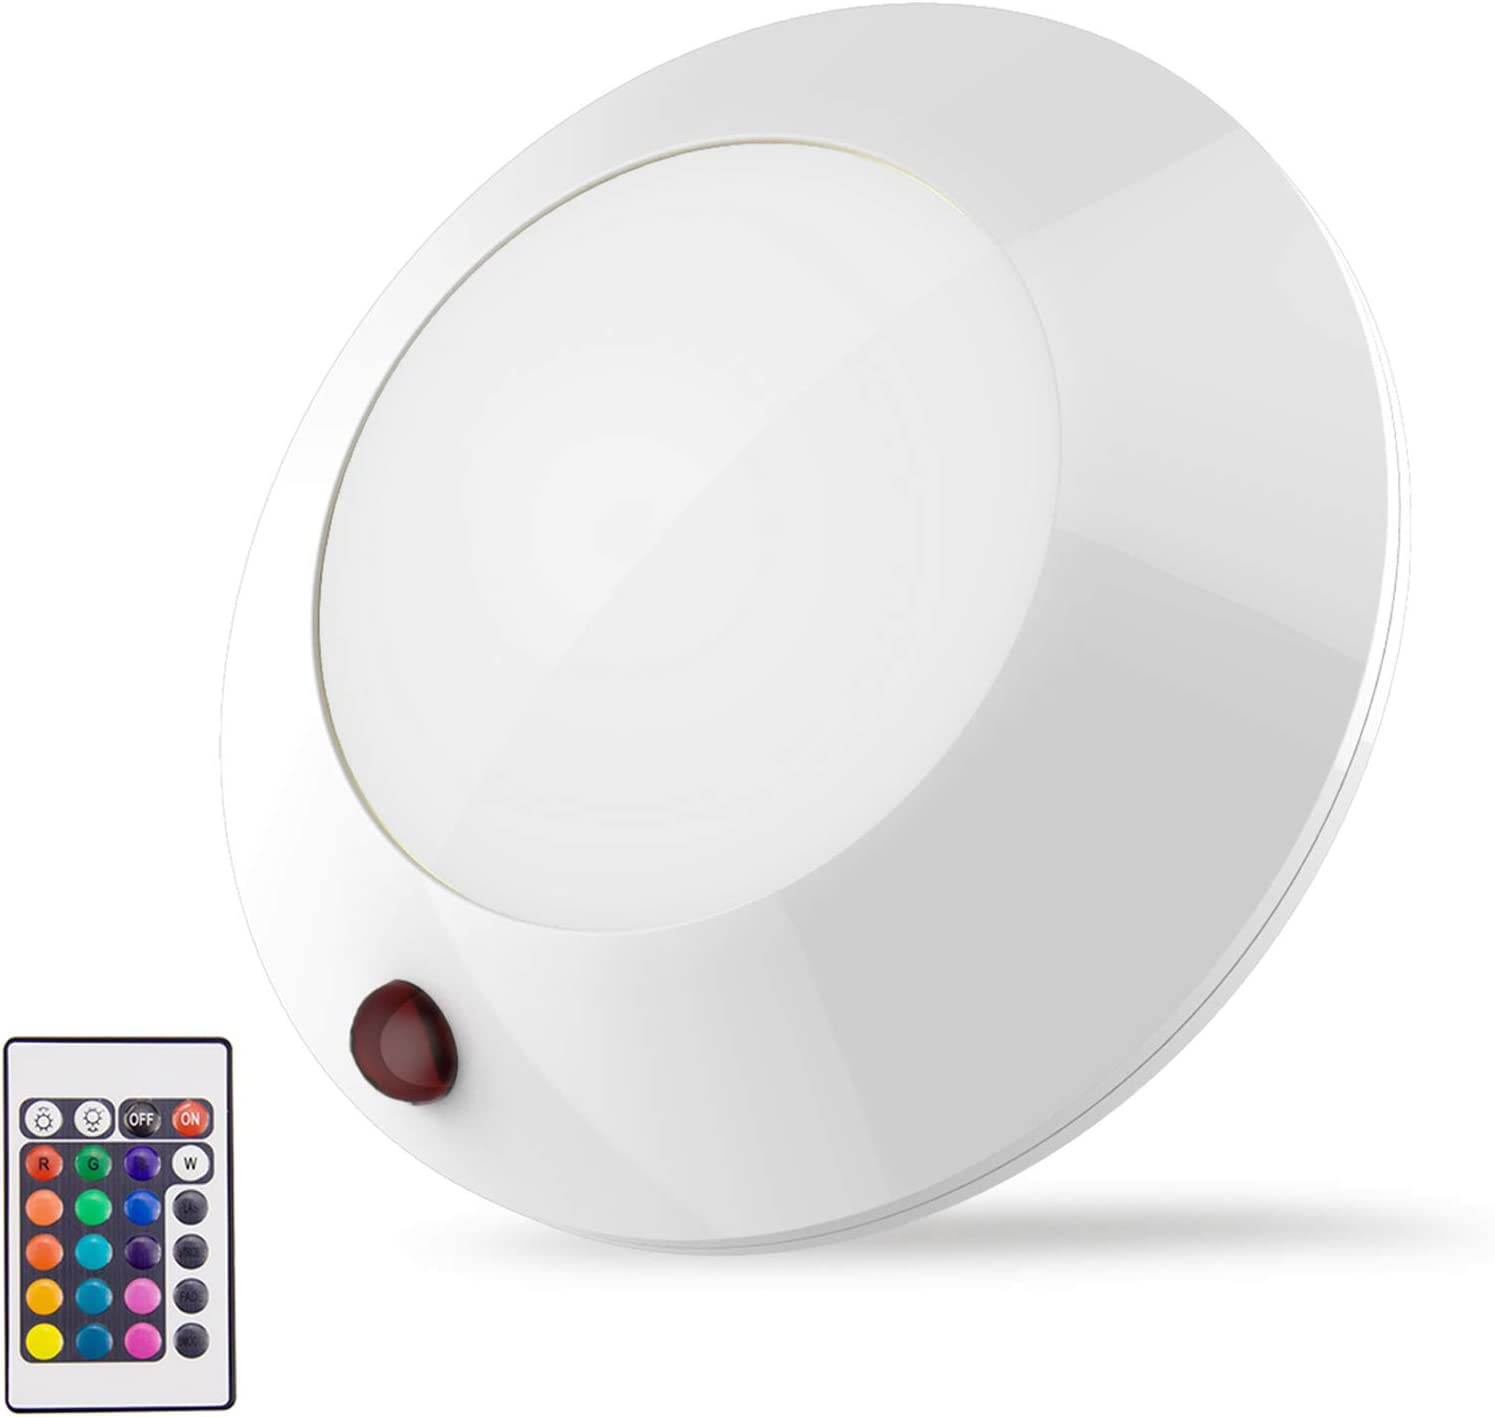 BIGLIGHT Battery Operated LED Ceiling Light Indoor Outdoor, Color Changing Lights, Remote Controlled, Wireless Light for Hallway Shower Shed Closet Hall Corridor Bedroom Bathroom Mood Lighting, 5 Inch - -